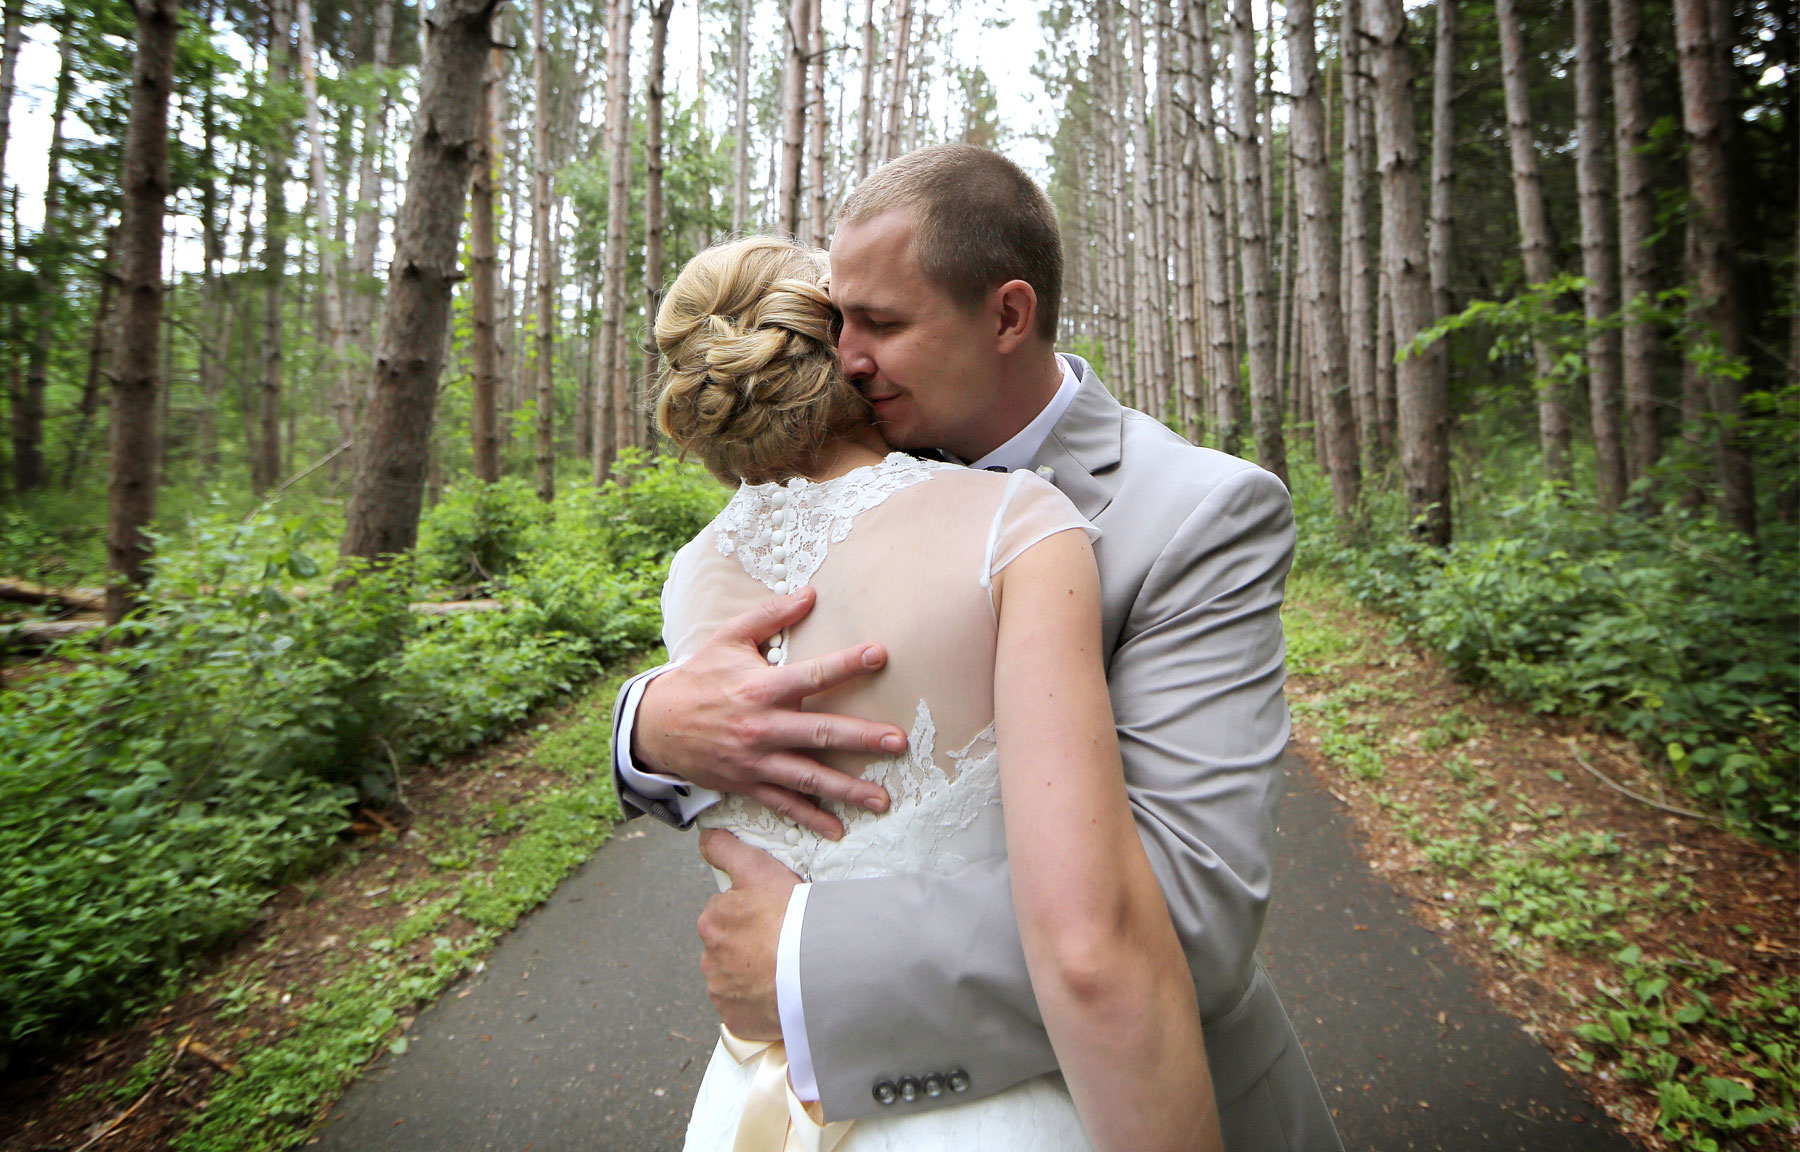 04-Minneapolis-MN-Wedding-Photography-by-Vick-Photography-Rustic-Forest-Woods-First-Look-Alyssa-&-Blake.jpg